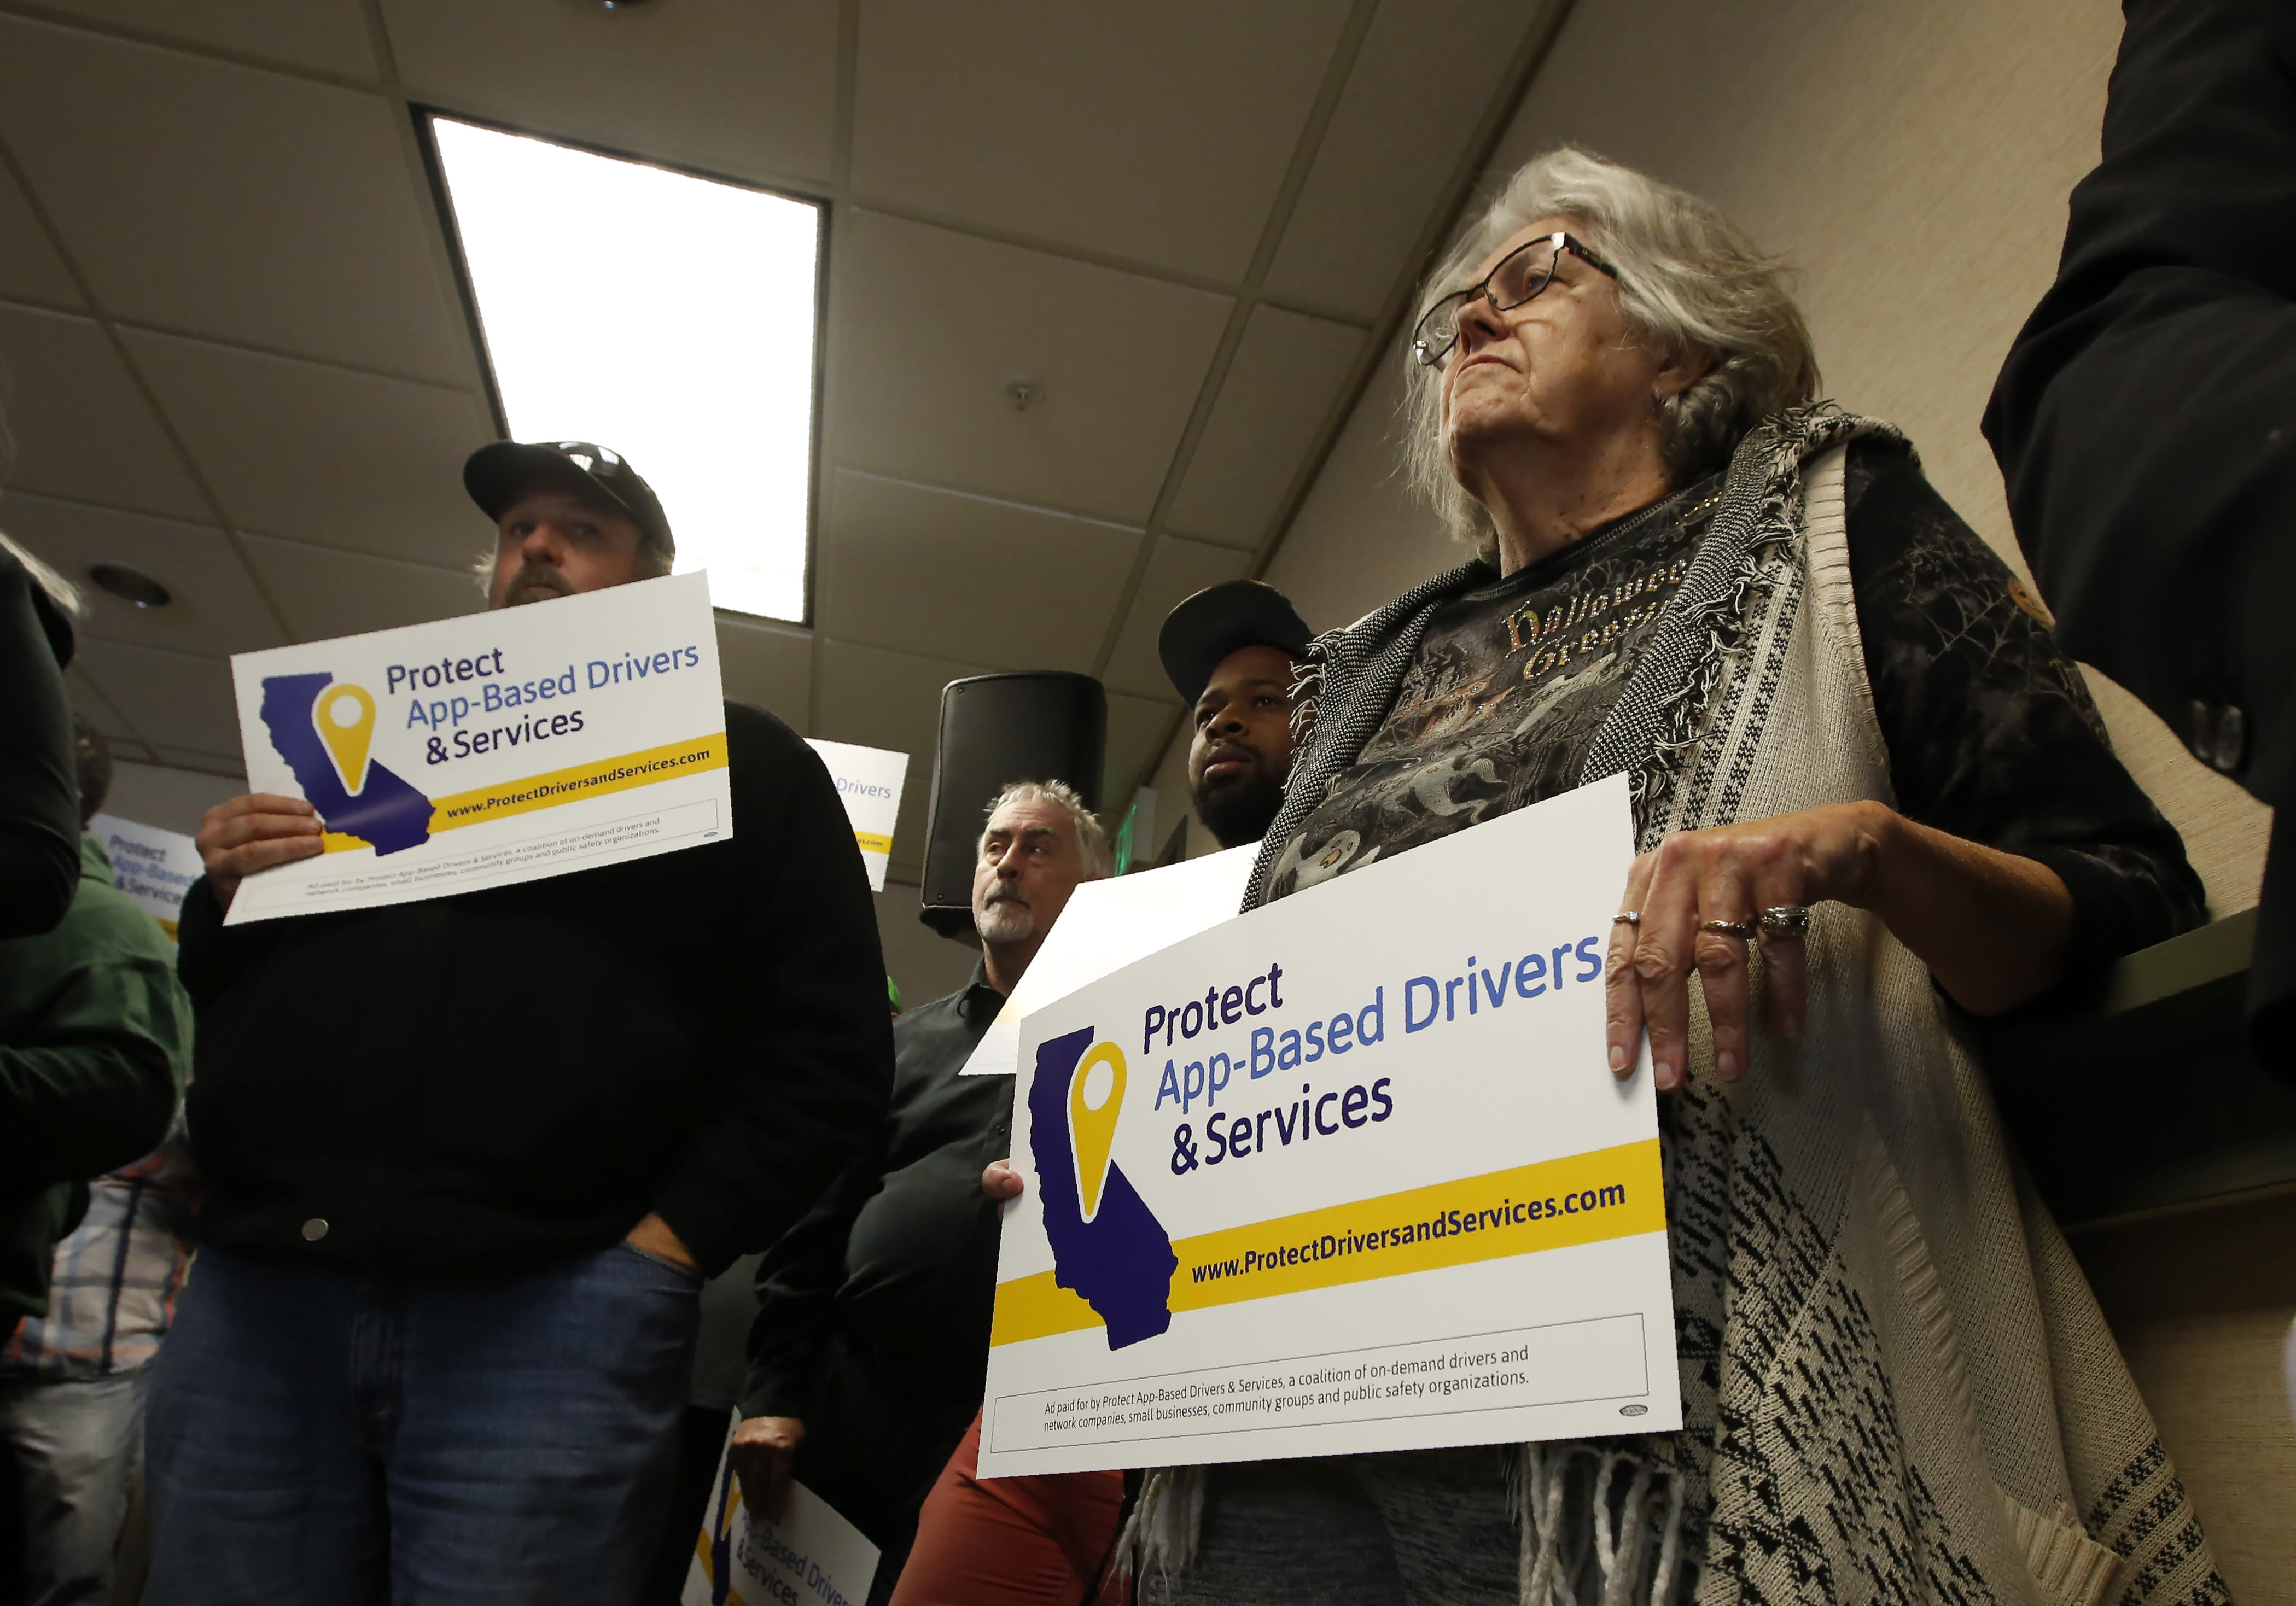 Carla Shrive, right, who drives for various gig into companies, joined other drivers to support a proposed ballot initiative challenging a recently signed law that makes it harder for companies to label workers as independent contractors, in Sacramento, Calif., Tuesday, Oct. 29, 2019. A group called Protect App-Based Drivers and Services announced Tuesday that it will push a ballot initiative guaranteeing that drivers remain independent contractors but also receive a minimum wage and money for health insurance. (AP Photo/Rich Pedroncelli)